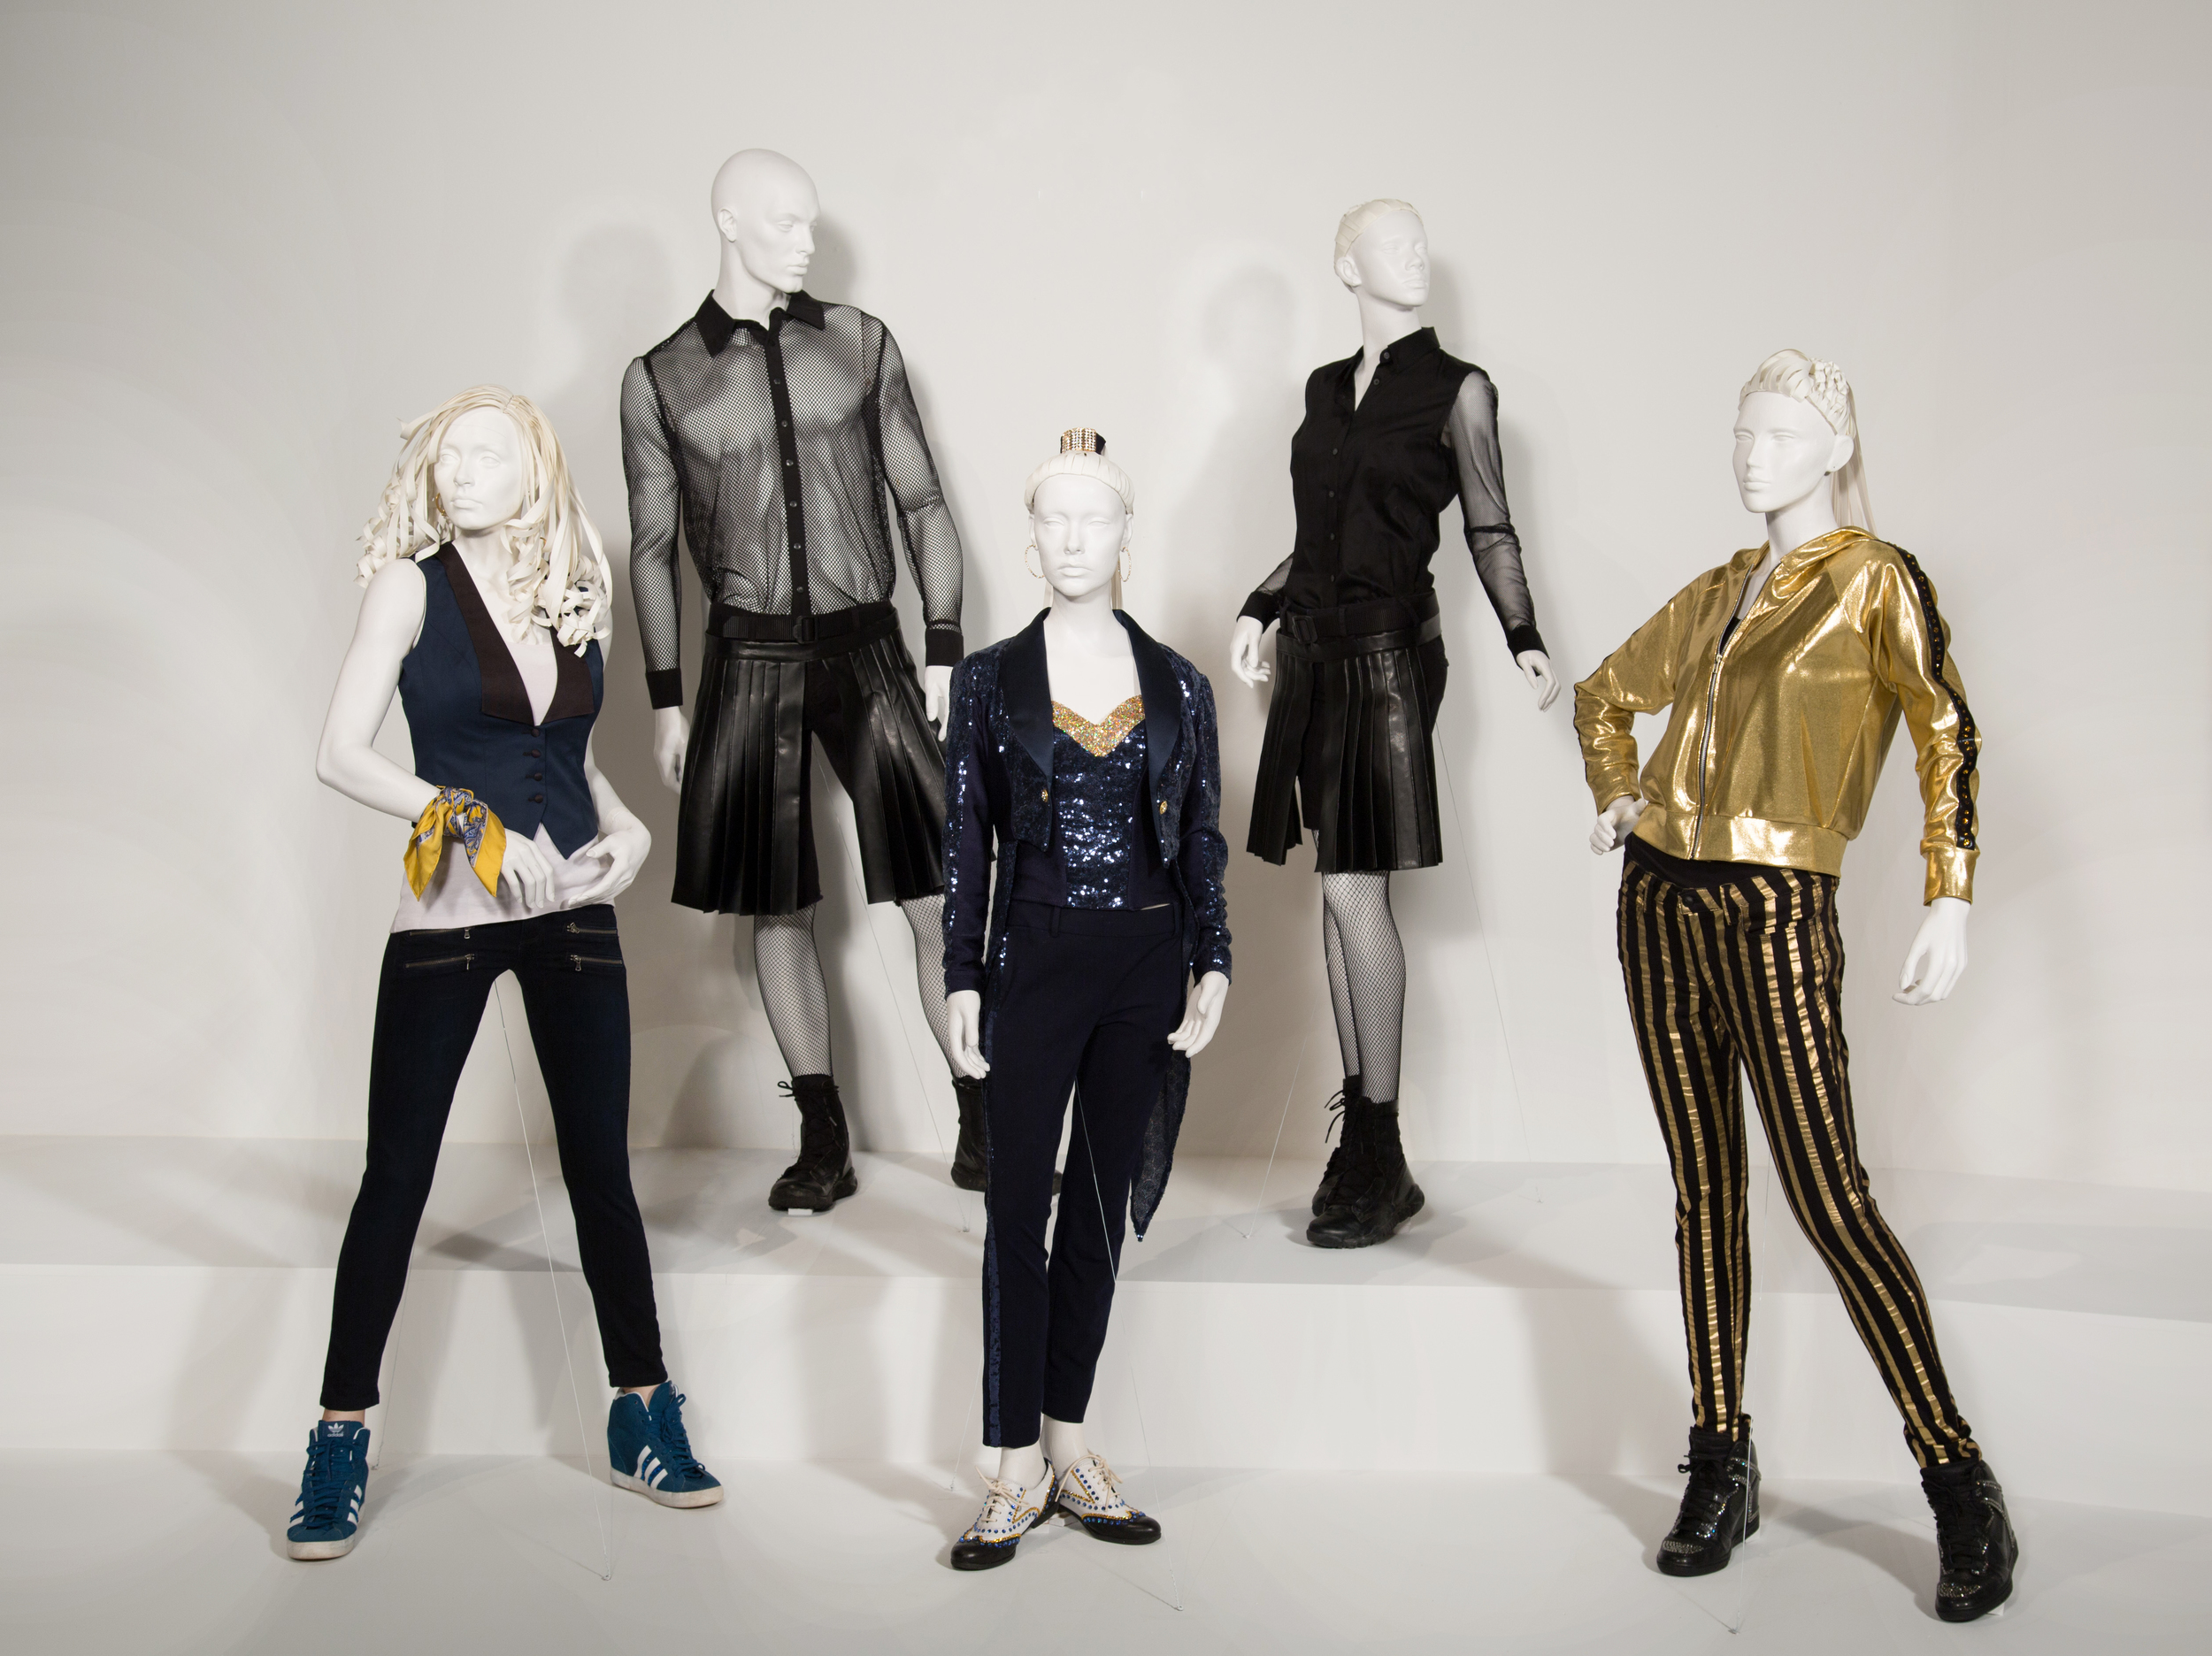 """Pitch Perfect 2"" costumes by Costume Designer, Salvador Perez Jr. These costumes can be seen in the 24th Annual ""Art of Motion Picture Costume Design"" exhibition, FIDM Museum, Fashion Institute of Design & Merchandising, Los Angeles. The exhibition is free to the public, Tuesday, February 9 through Saturday, April 30, 2016, 10:00 a.m. - 5:00 p.m. .(Photo: Alex J. Berliner/ABImages)"